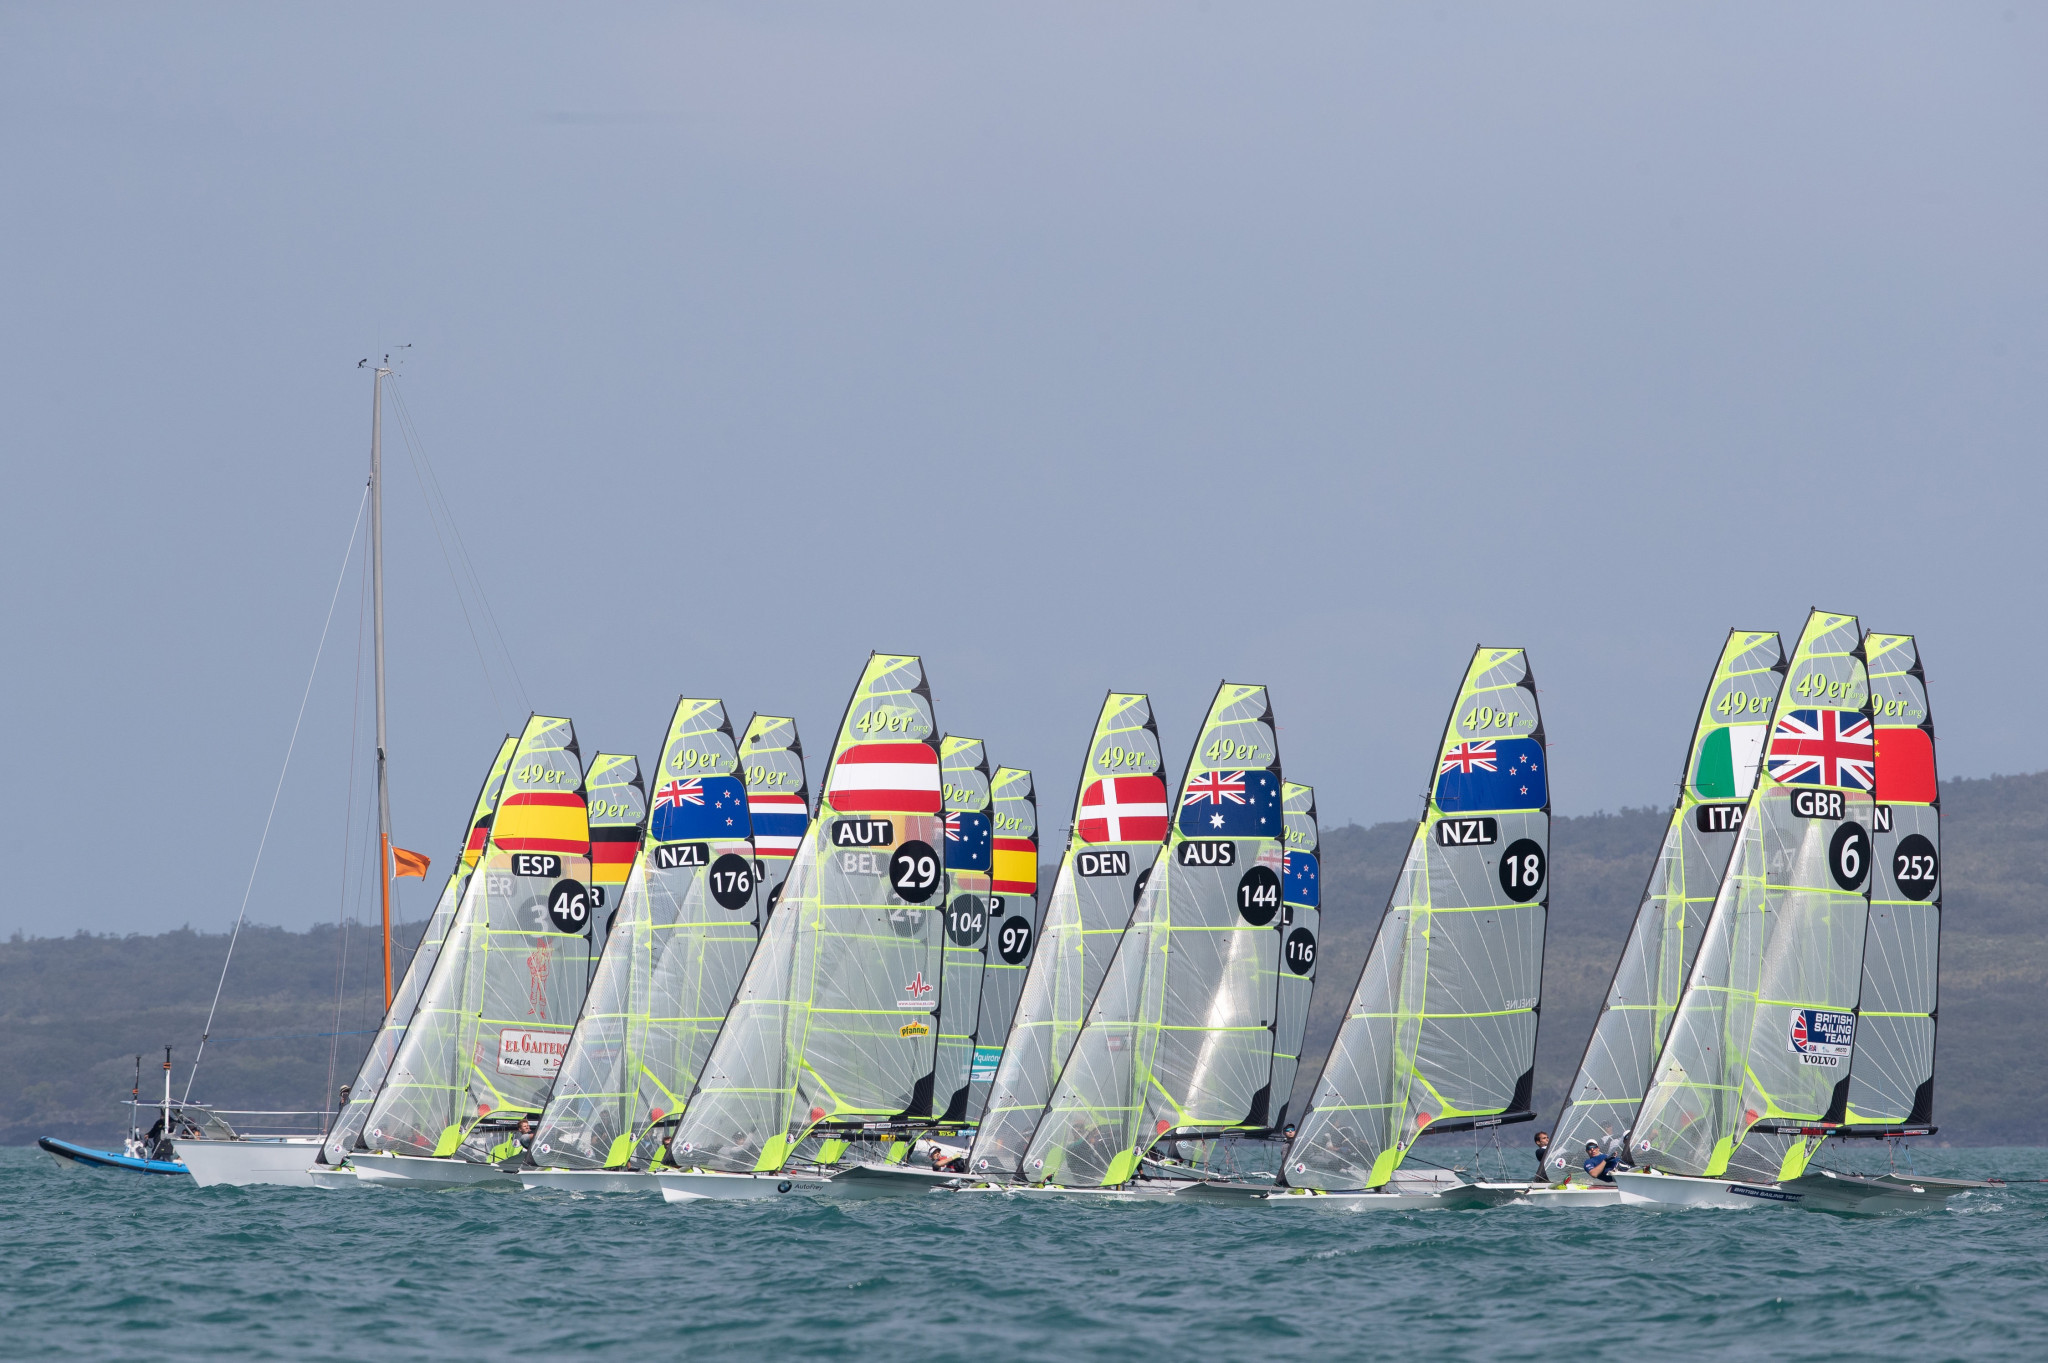 Benjamin Bildstein and David Hussle of Austria lead the 49er event at the Oceania Championships ©Oceania Championships